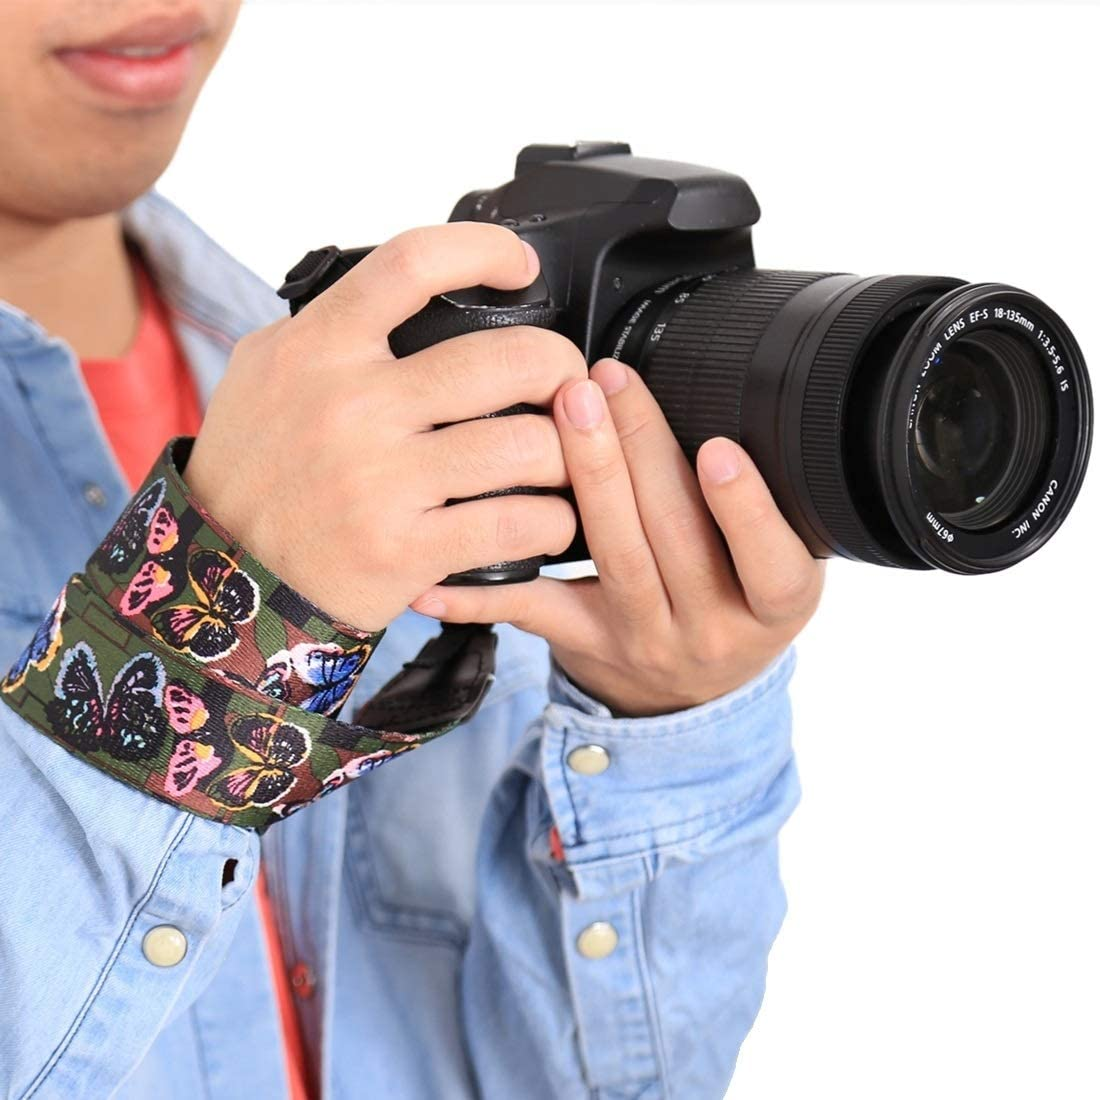 YANTAIANJANE Camera Accessories Retro Ethnic Style Multi-Color Series Butterflies Shoulder Neck Strap Camera Strap for SLR//DSLR Cameras Color : Color2